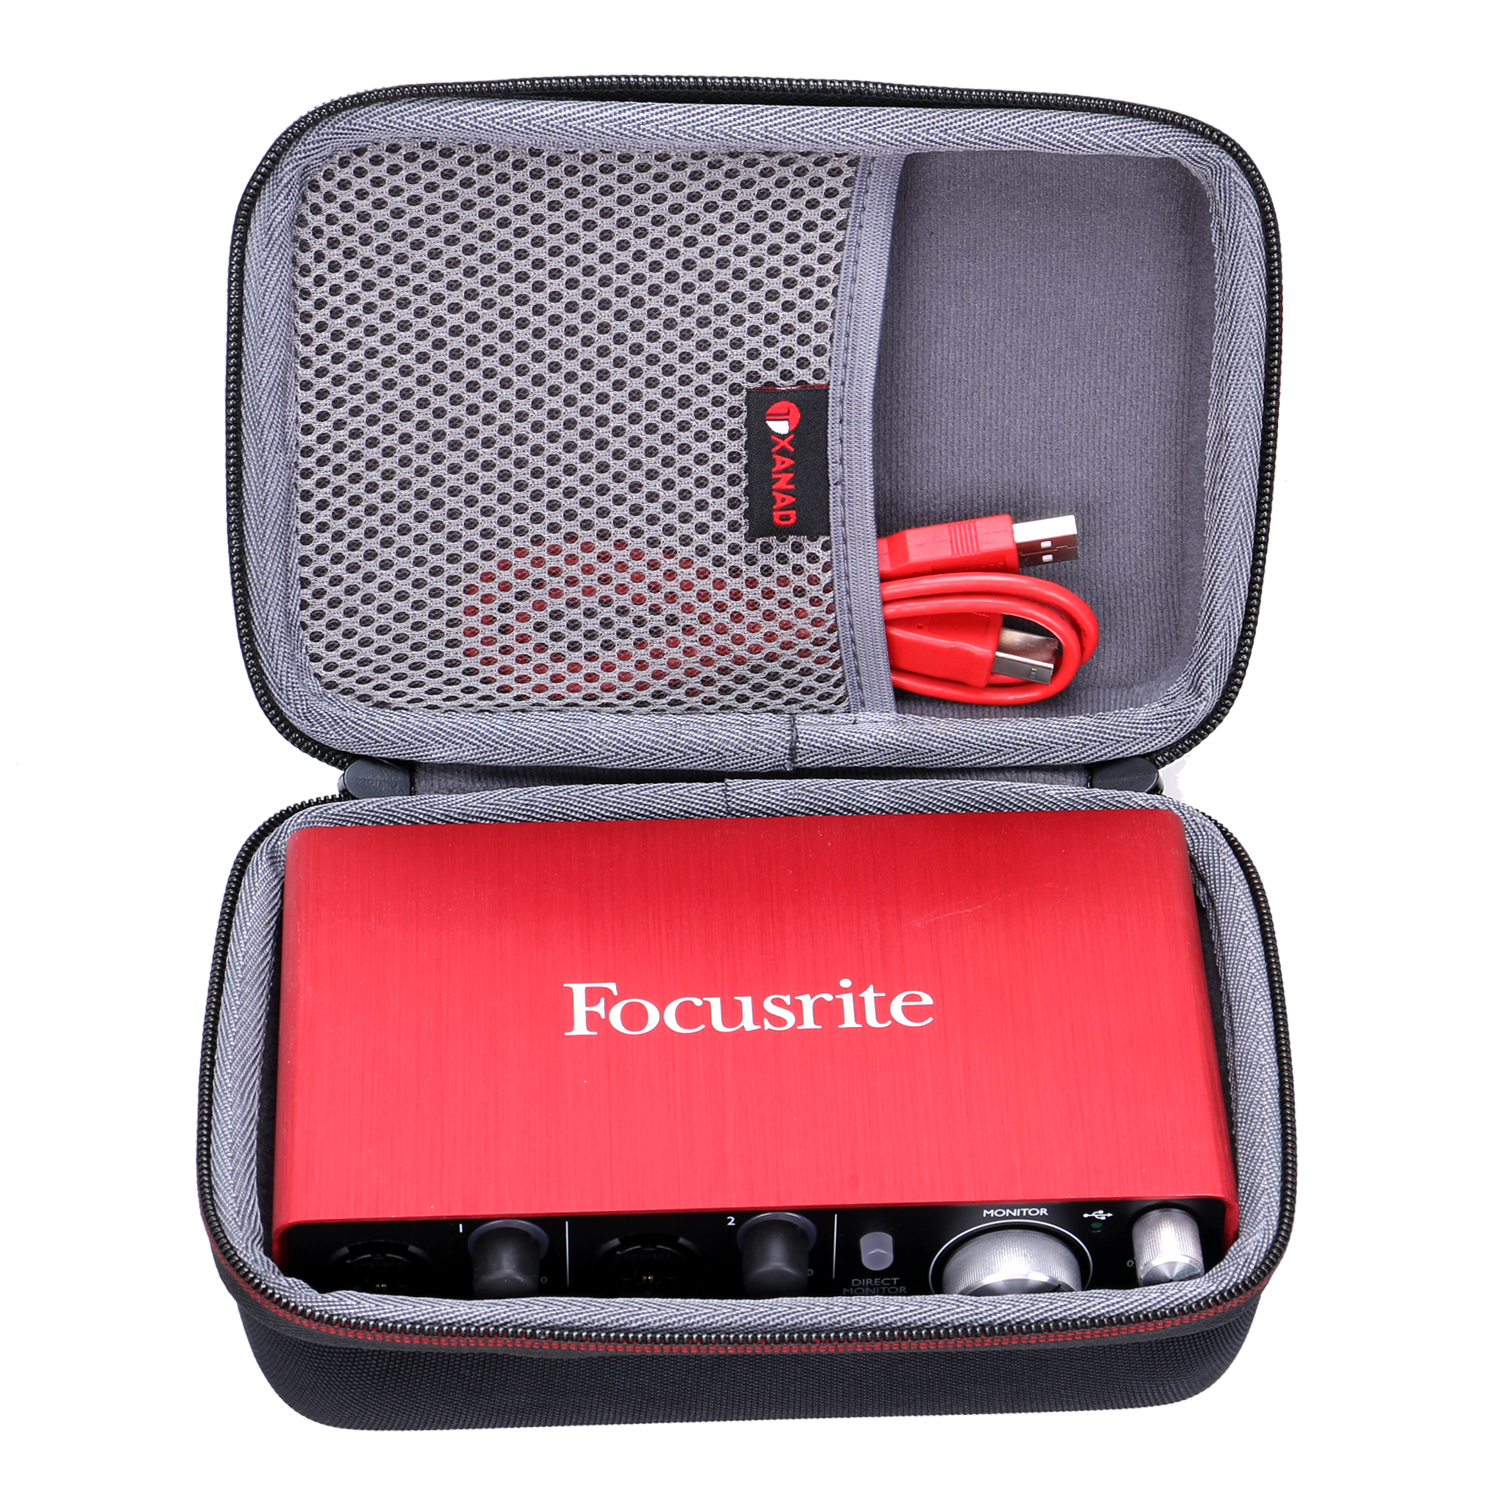 XANAD Waterproof EVA Hard Case For Focusrite Scarlett Solo (2nd Gen) USB Audio Interface With Pro Tools | First